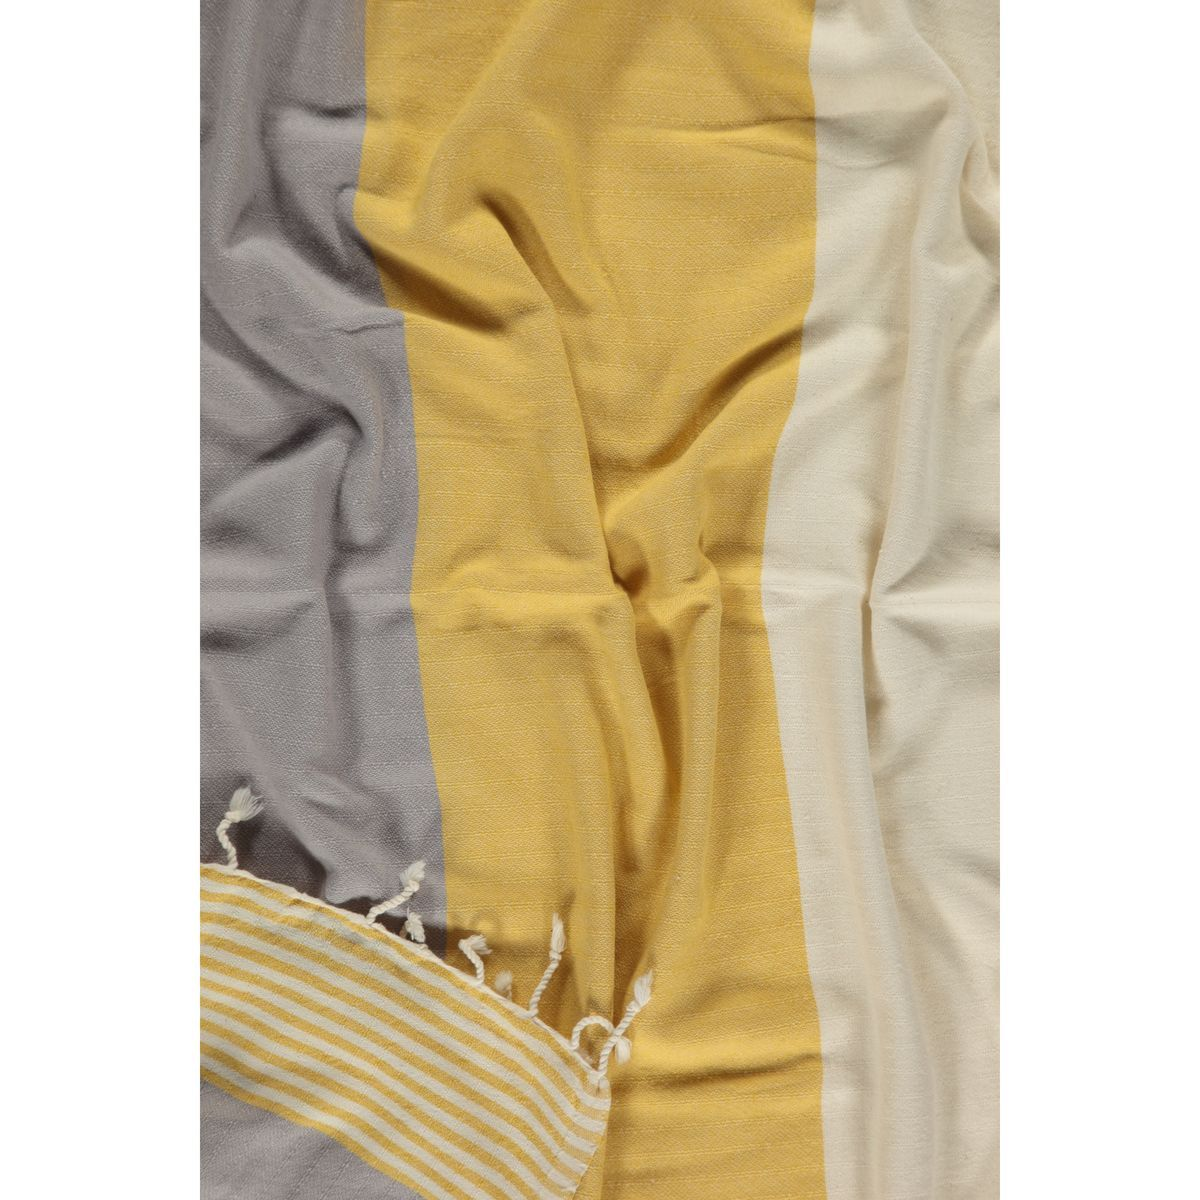 Peshtemal Twin Sultan - Yellow / Light Grey